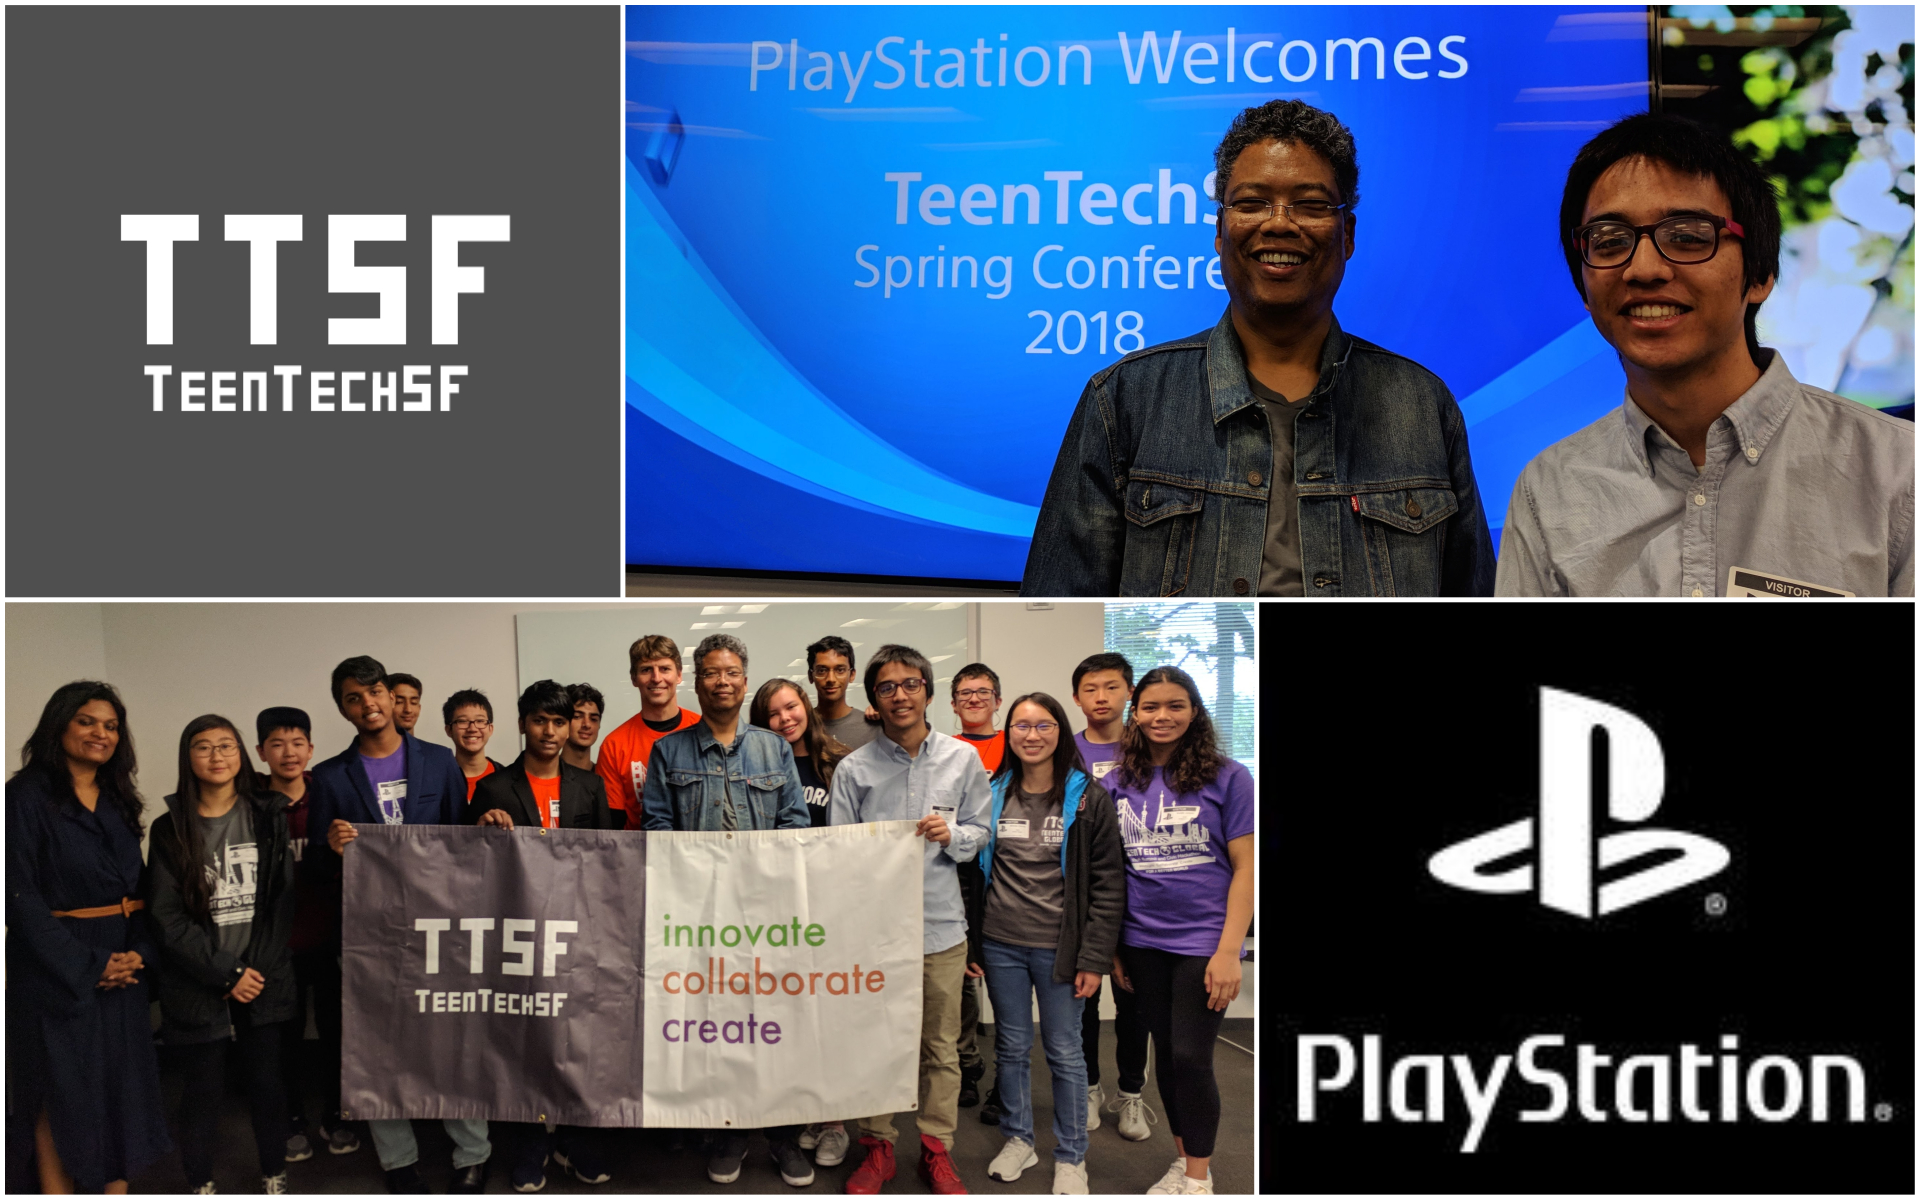 TeenTechSF@PlayStation